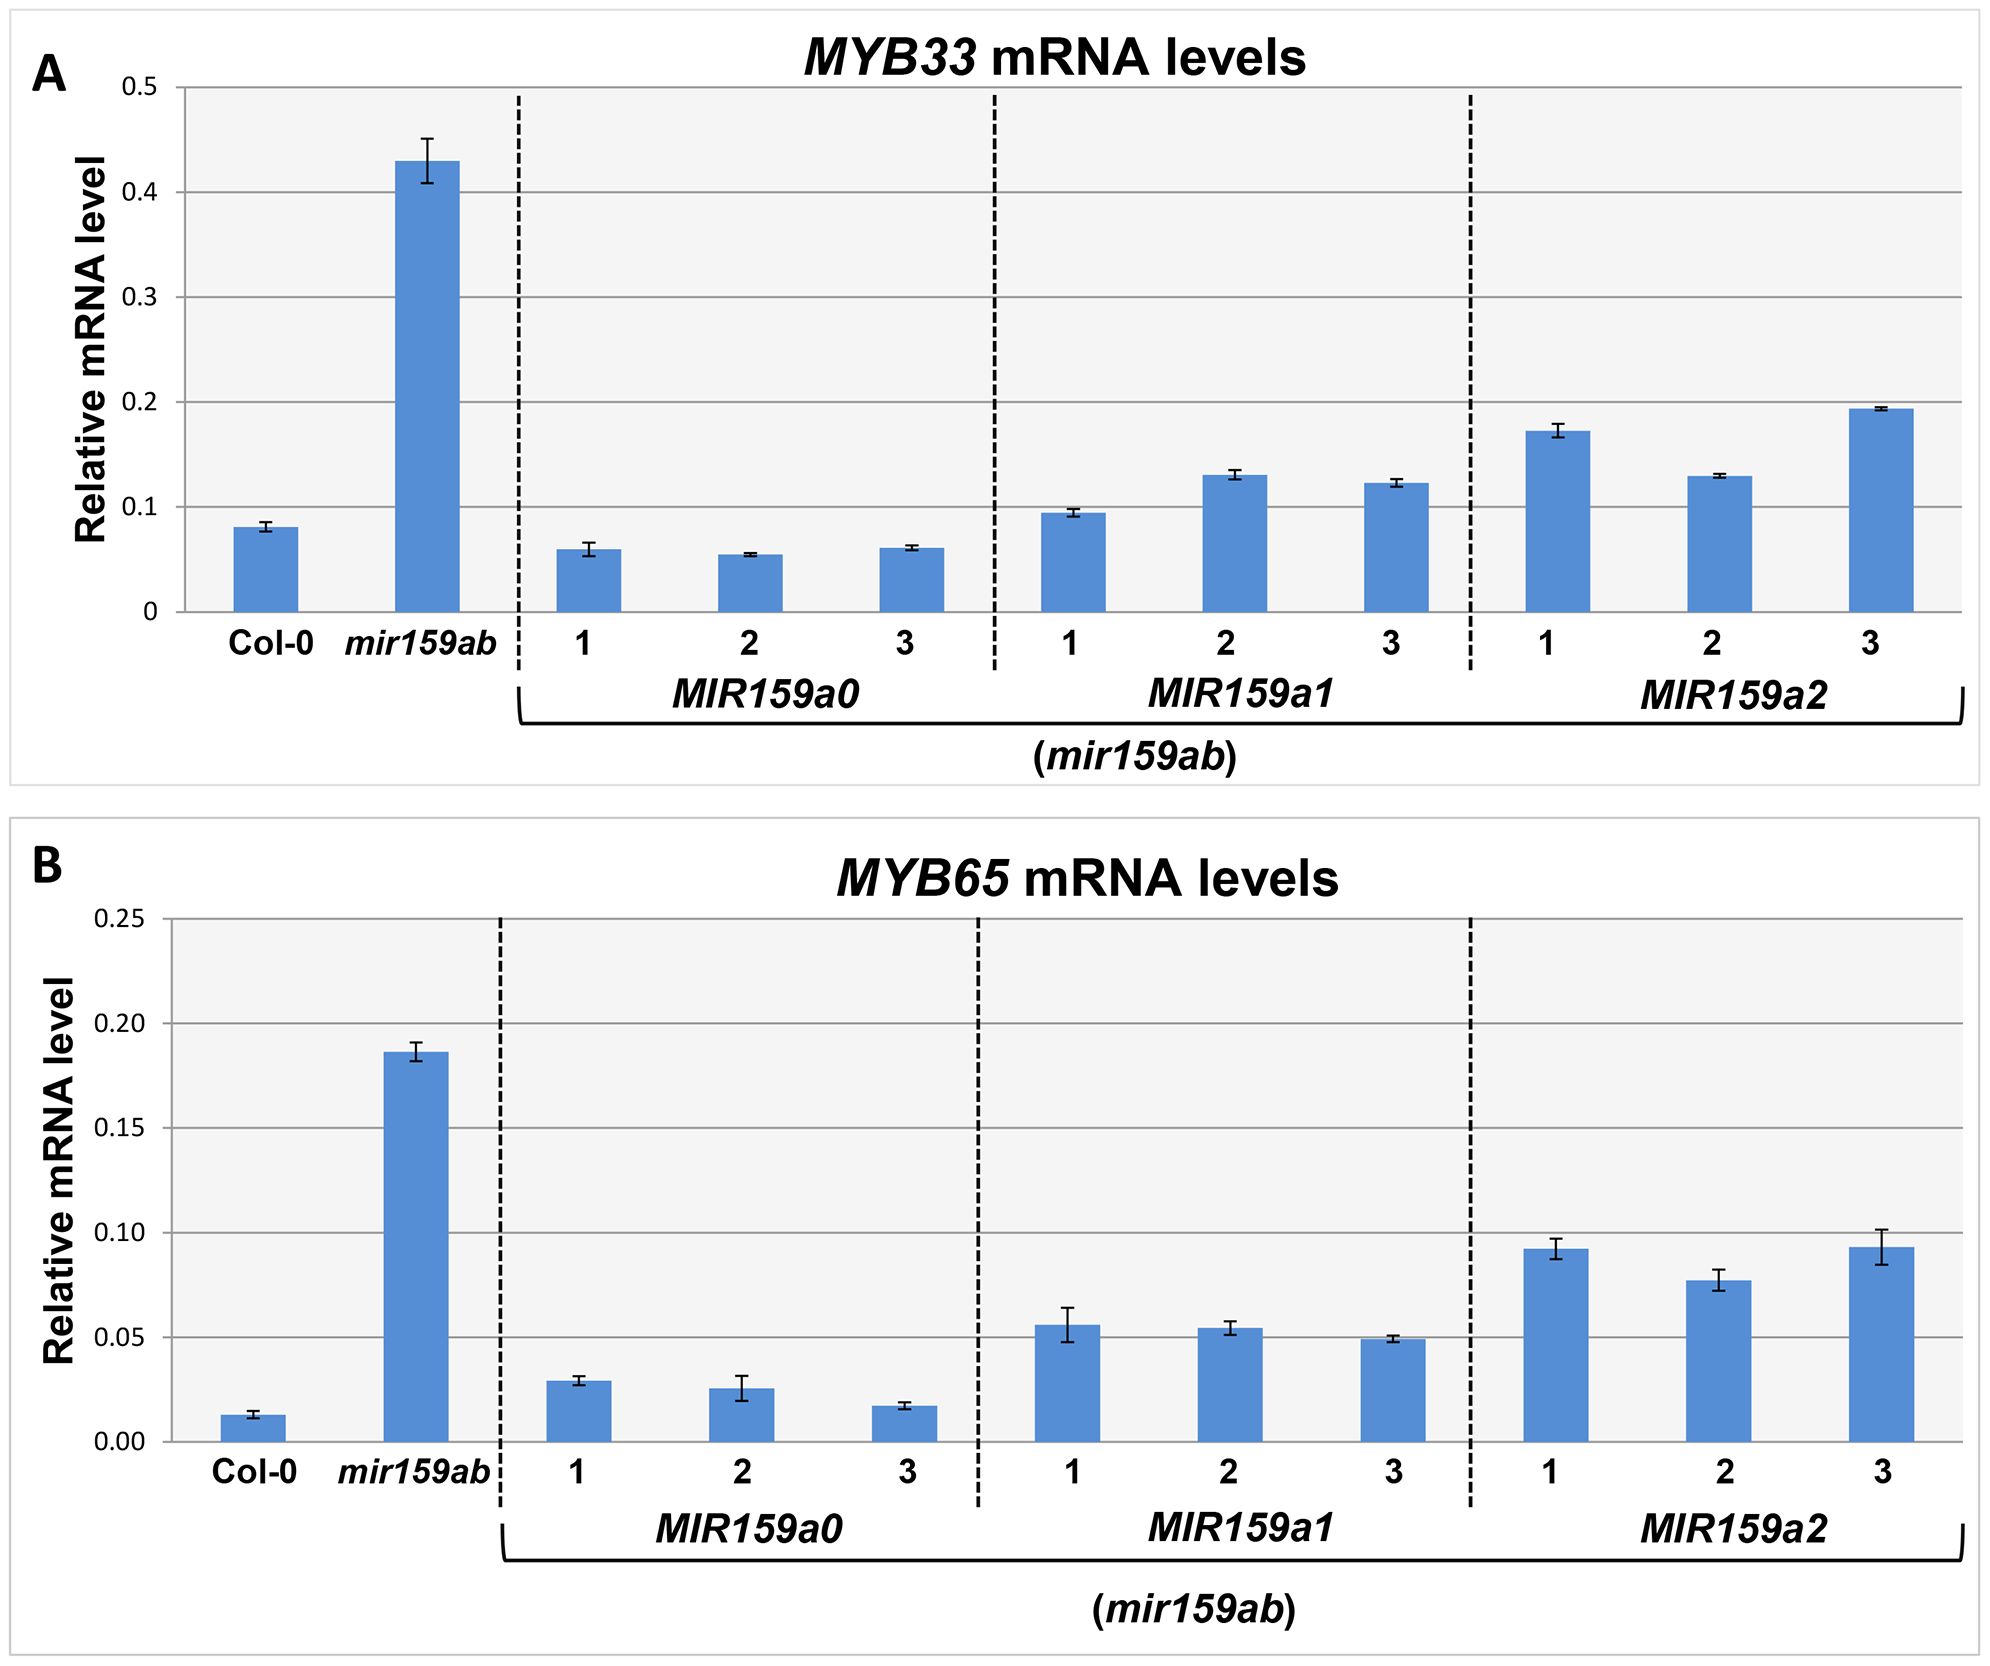 MiR159a1 and miR159a2 repress the endogenous <i>MYB33/MYB65</i> mRNA levels.